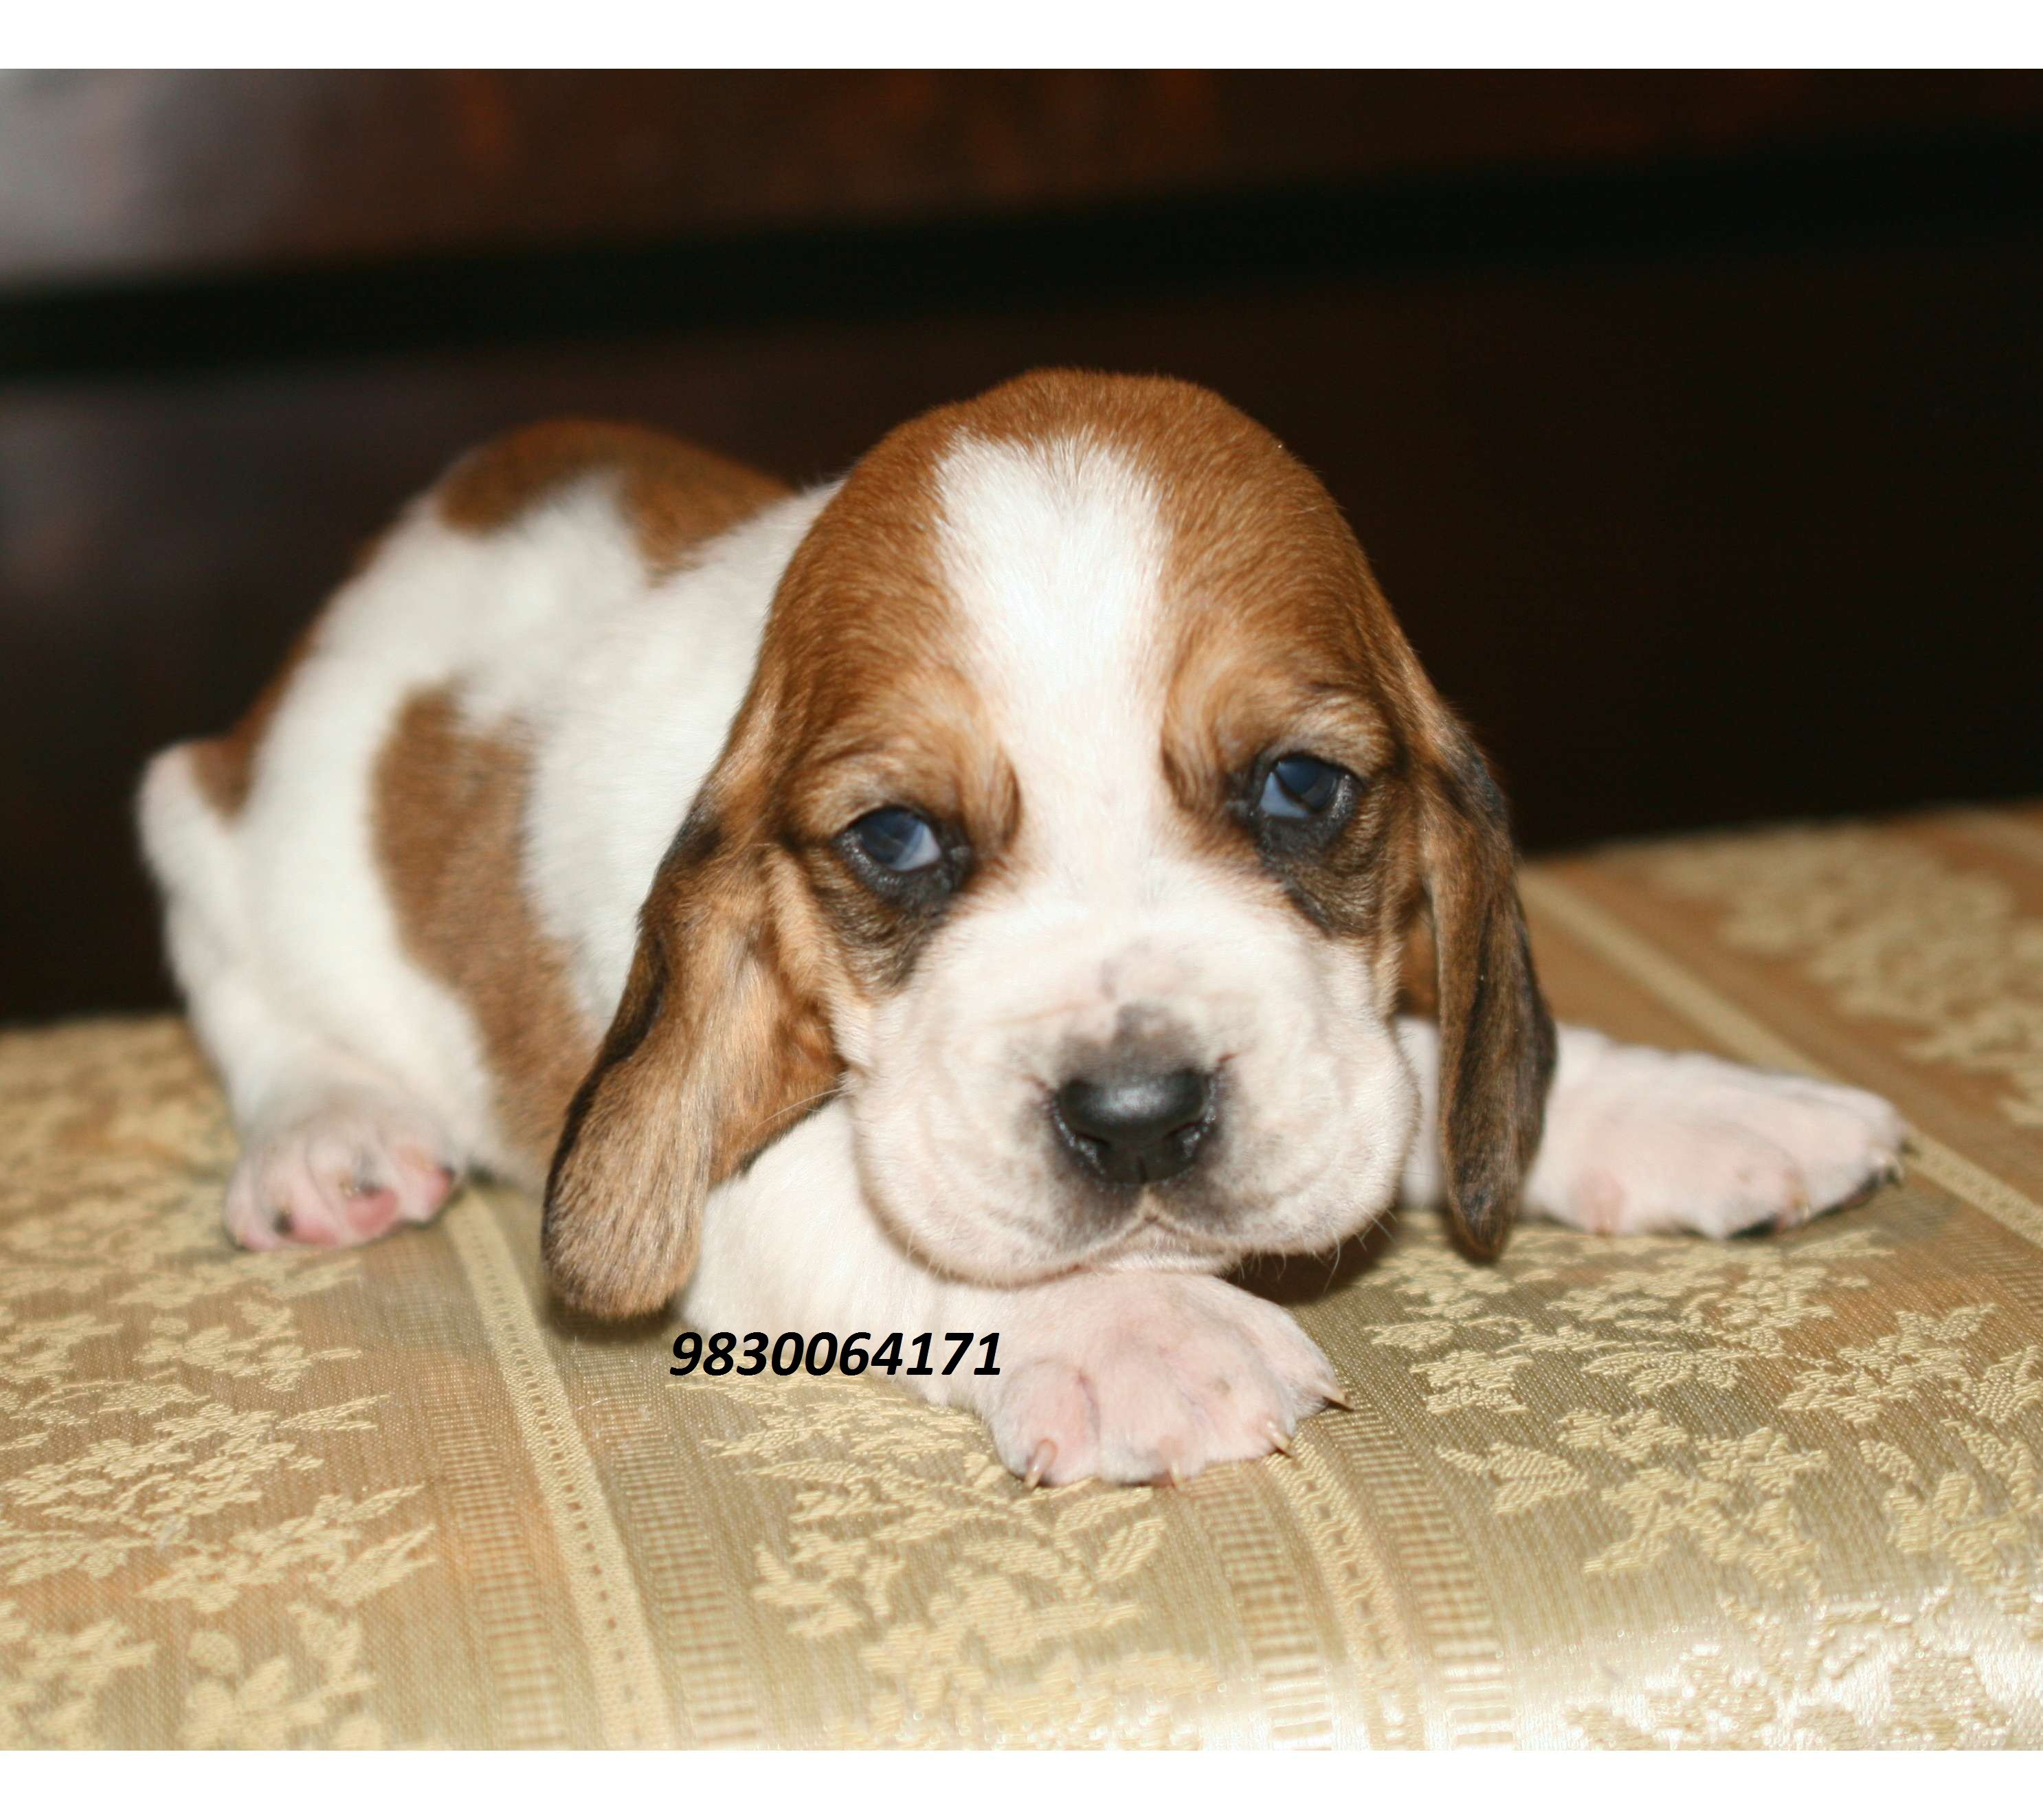 Bassat Hound Puppies At Clawsnpawskennel 9830064171 Basset